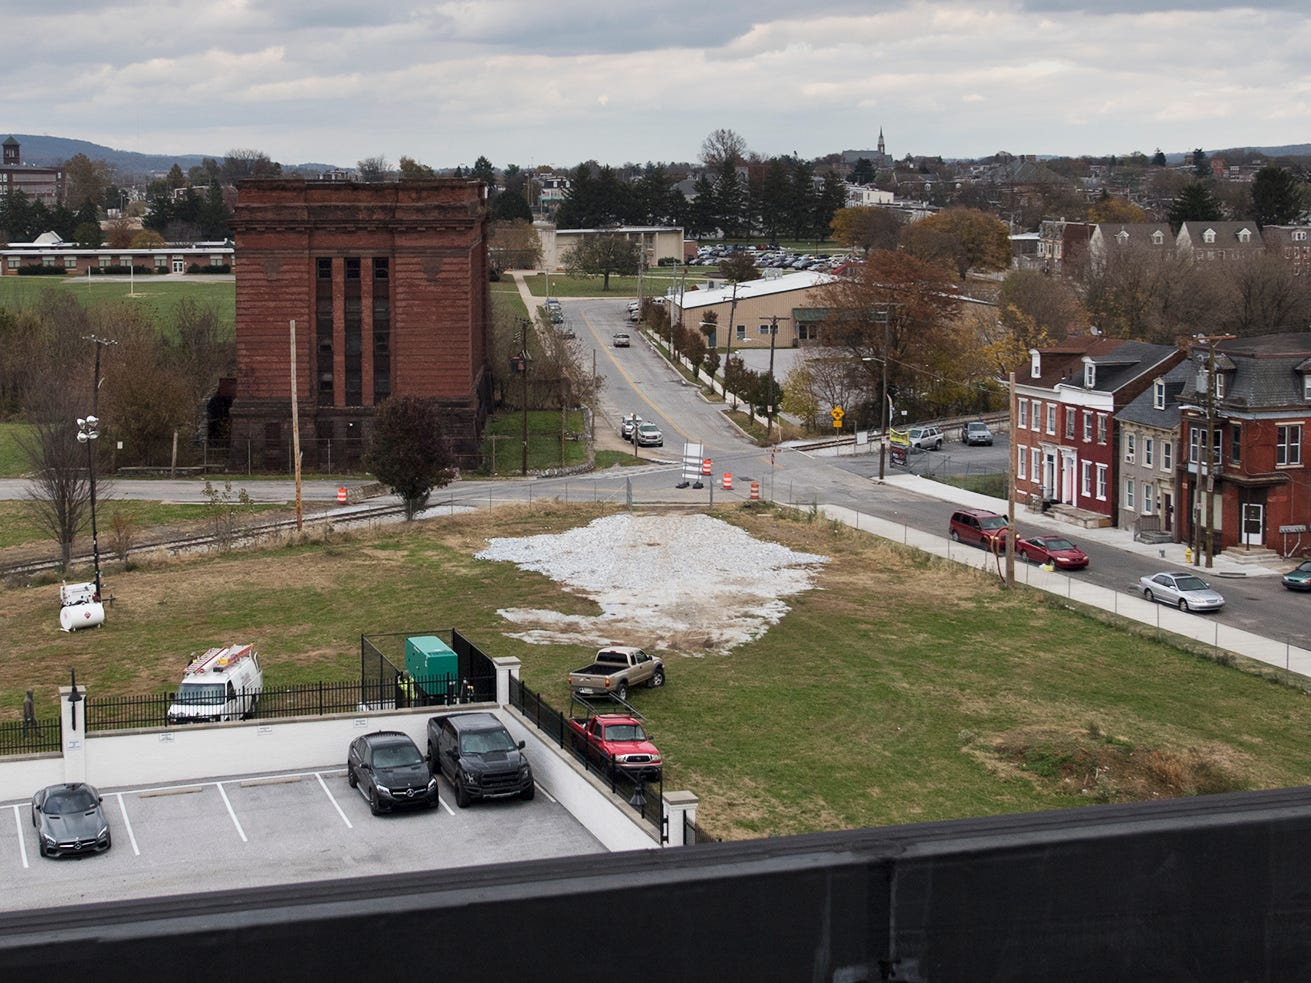 This is a view of the old York County Prison and the surrounding neighborhood from the roof of the Bi-Comp building.